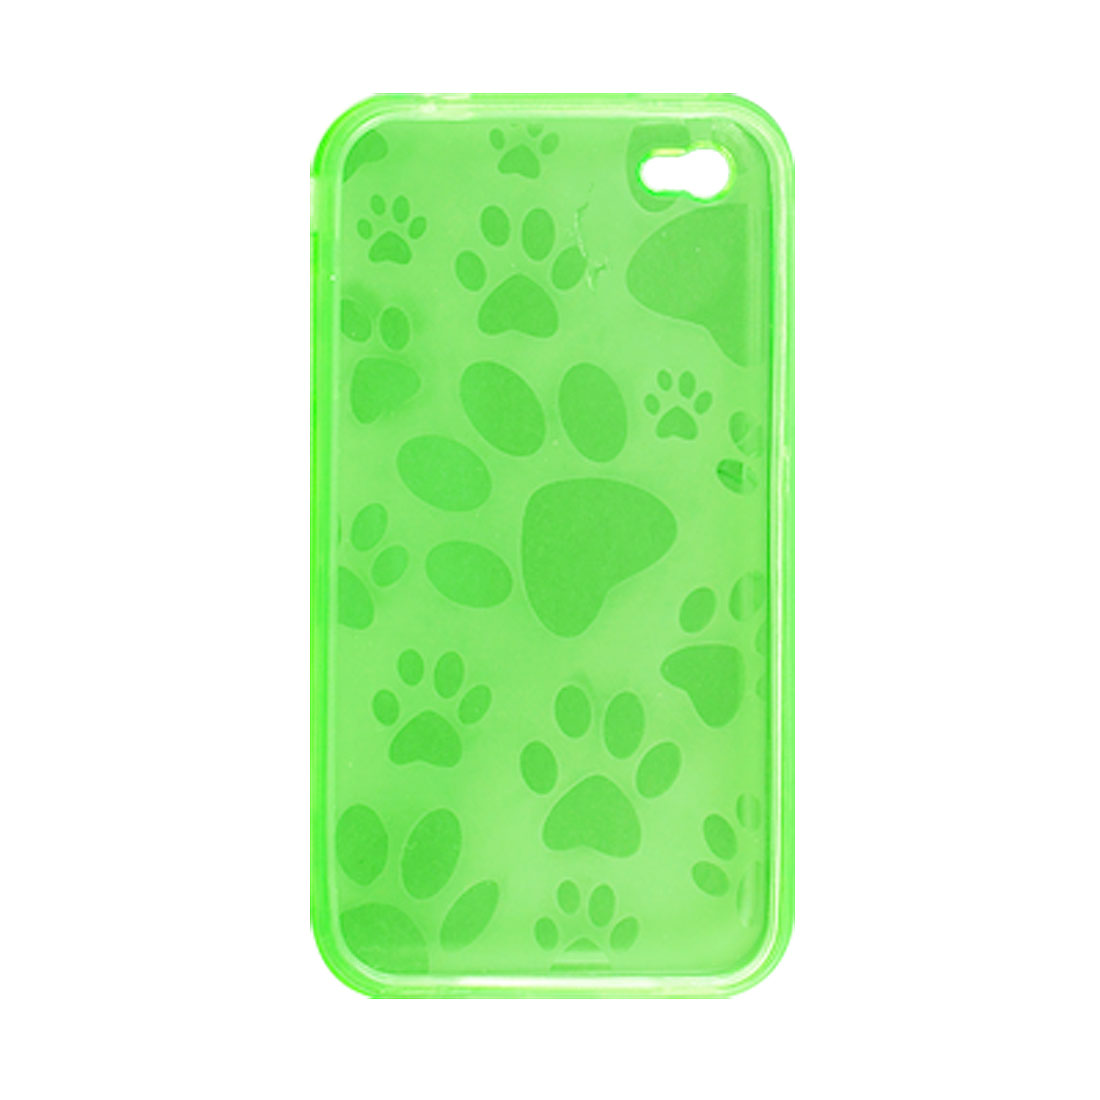 Clear Green Soft Plastic Inner Paw Design Case for iPhone 4 4G